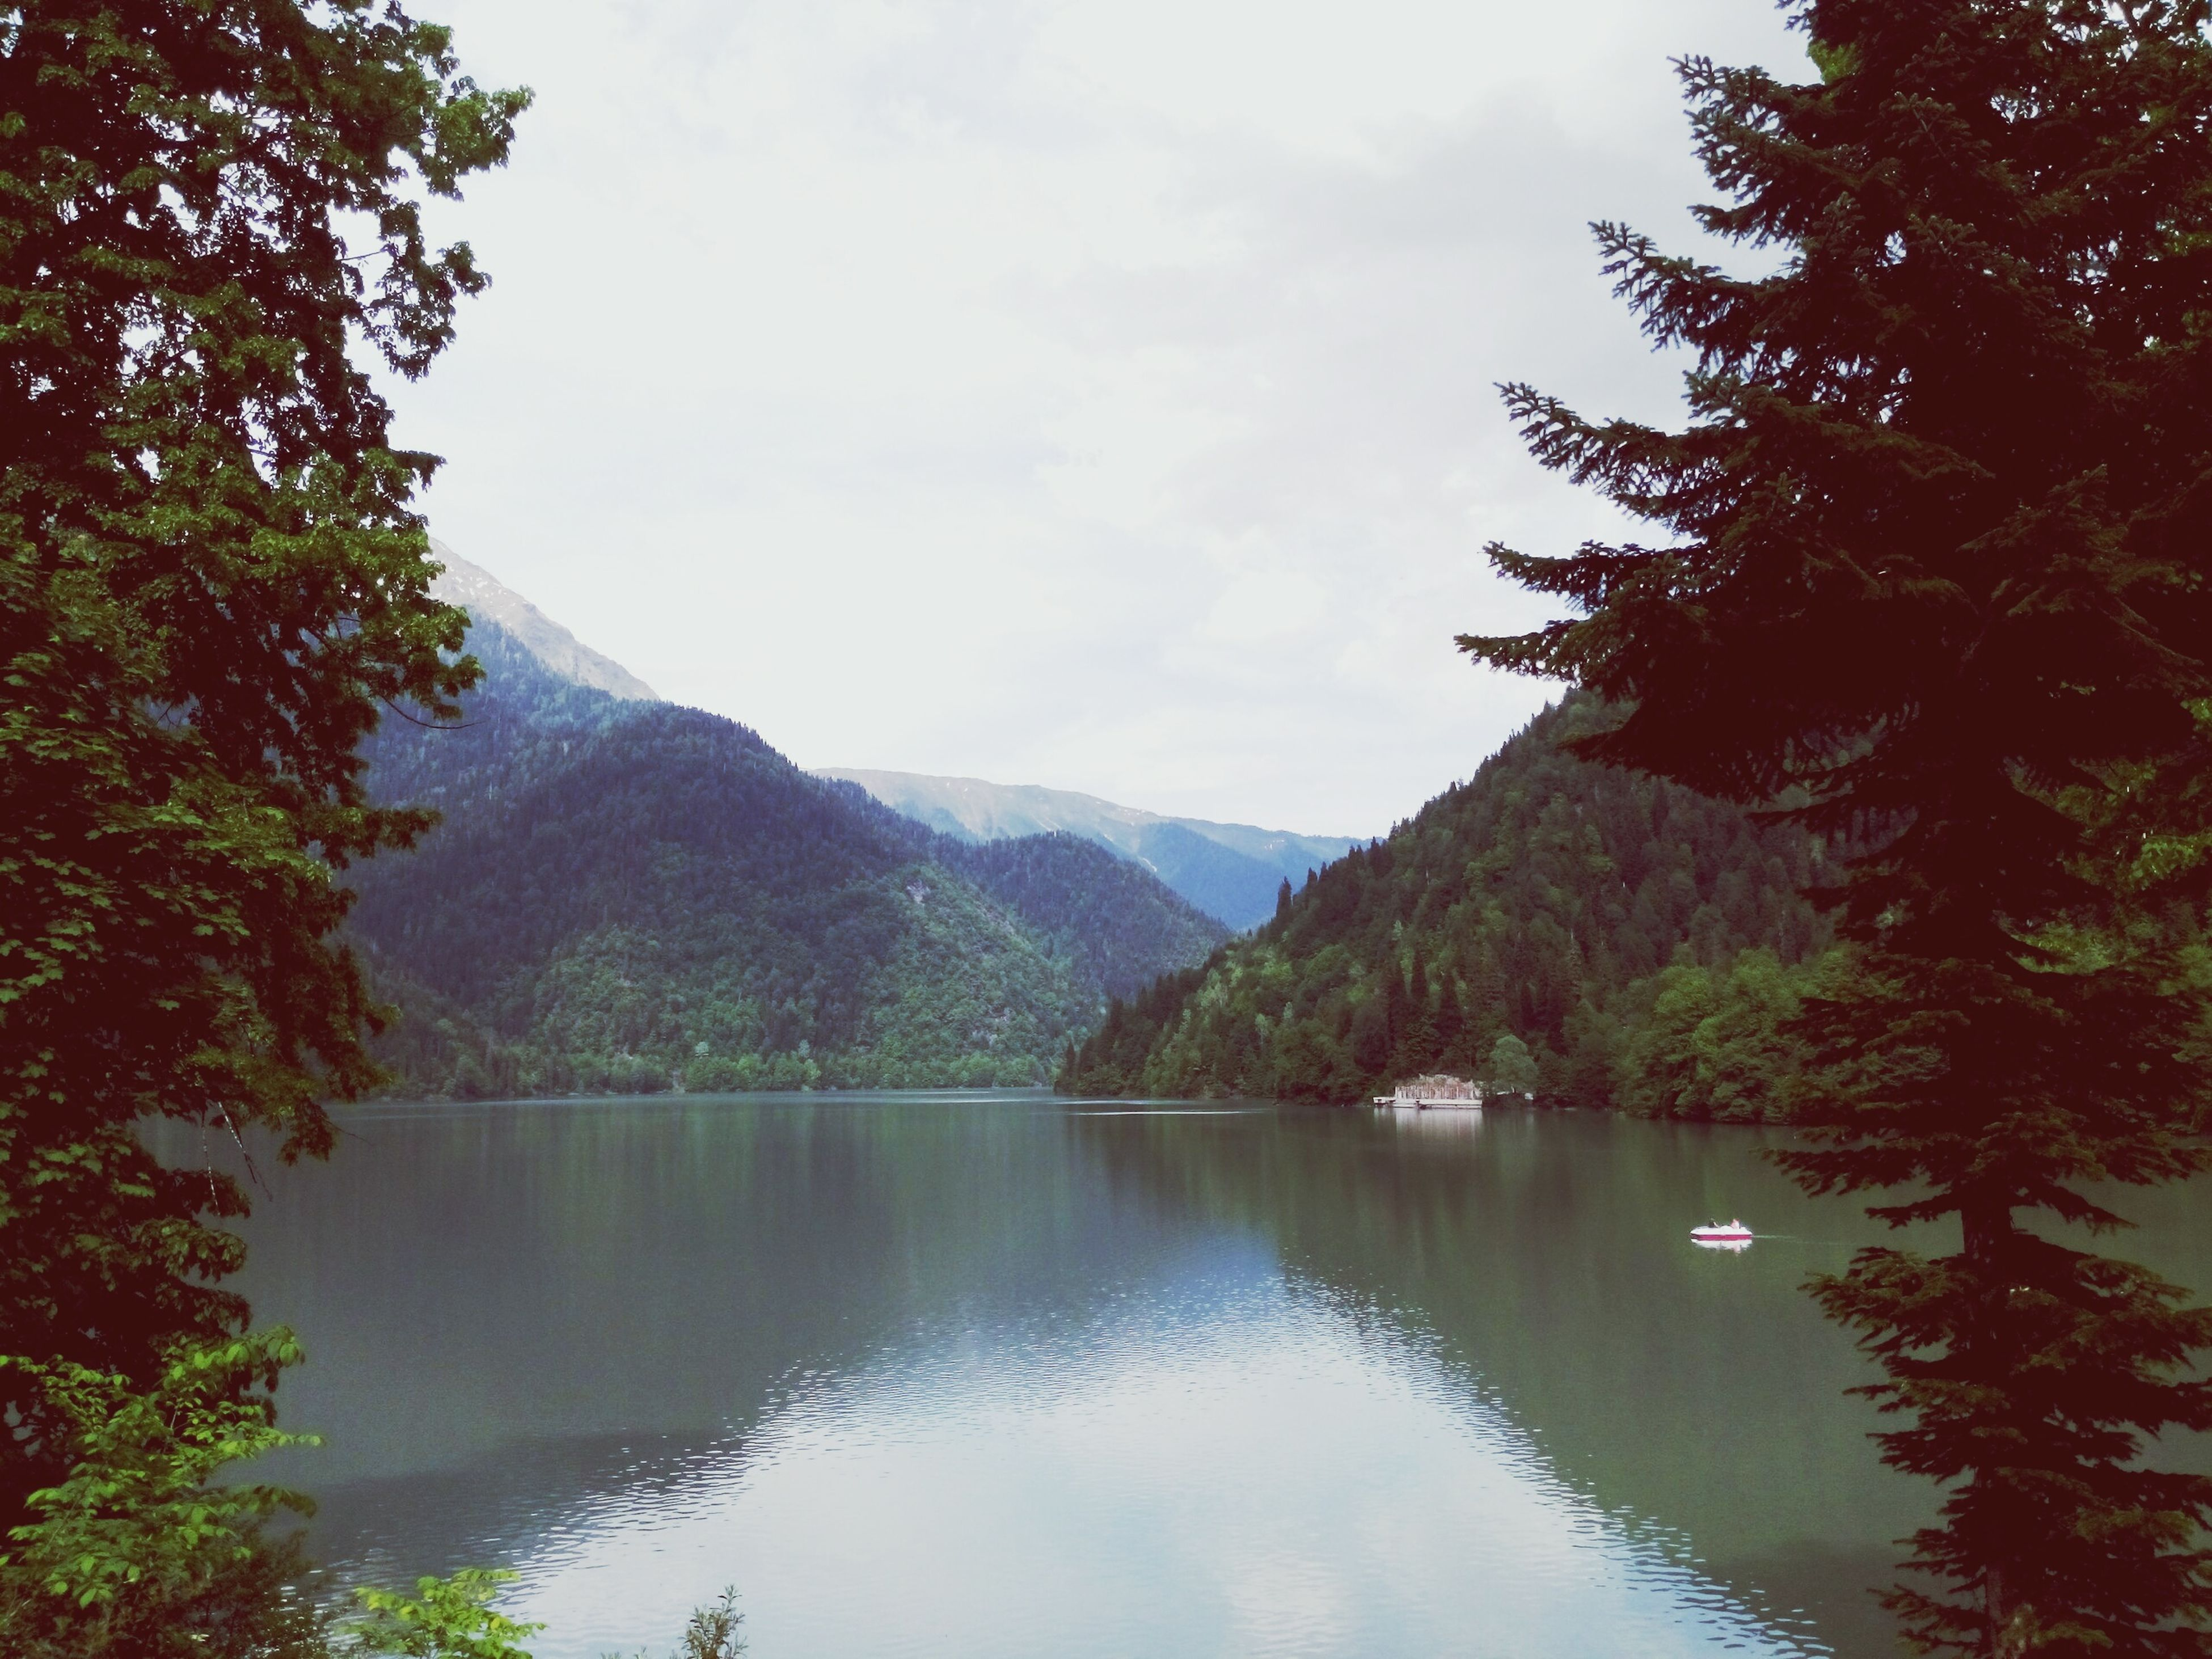 mountain, tranquil scene, tranquility, tree, water, scenics, lake, mountain range, beauty in nature, reflection, sky, nature, idyllic, waterfront, non-urban scene, river, majestic, calm, cloud, outdoors